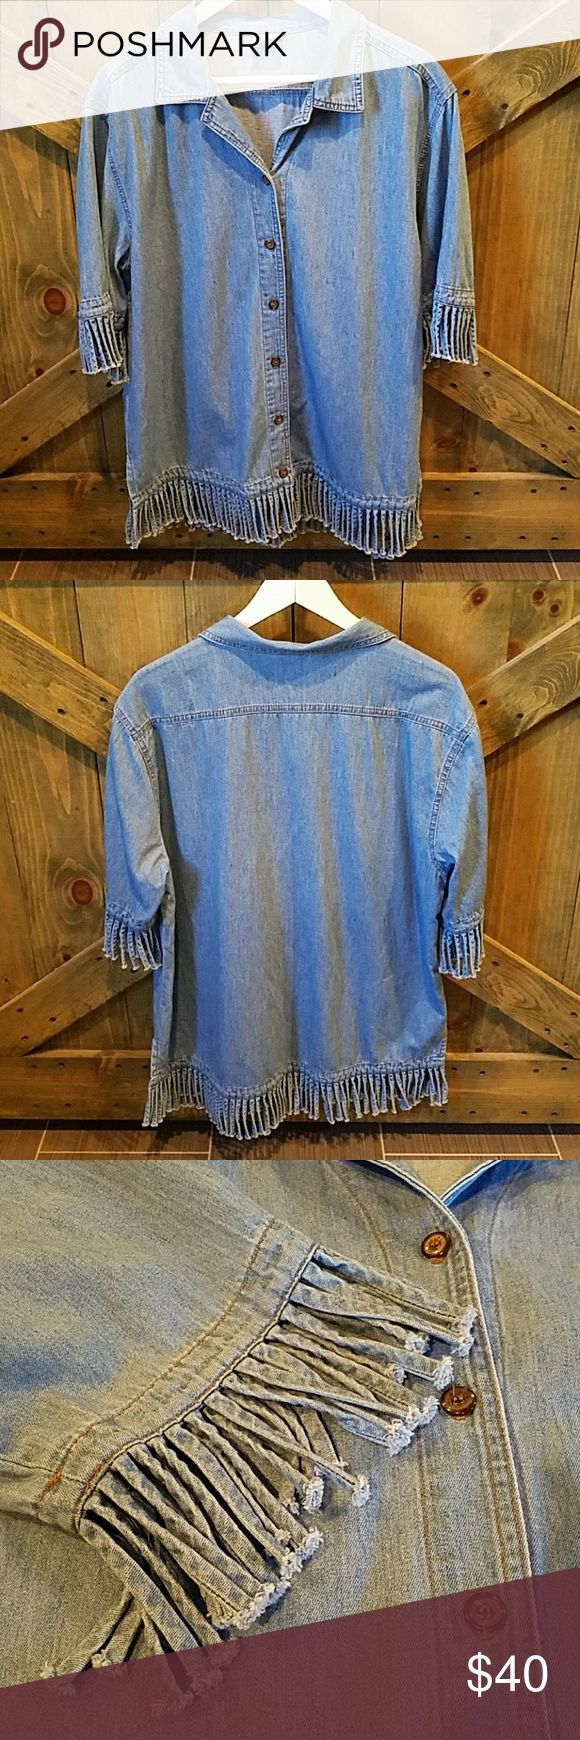 CMC Short Sleeve Fringed Denim Shirt Be different!, this denim shirt is so cool, has fringes around the sleeves and on the bottom hem, 6 buttons down the front all present, has slits on the side for ease and comfort, has collar at top no ring around the collar, by Color Me Cotton, size large, no rips or stains, great with brown boots and leggings Color Me Cotton Tops